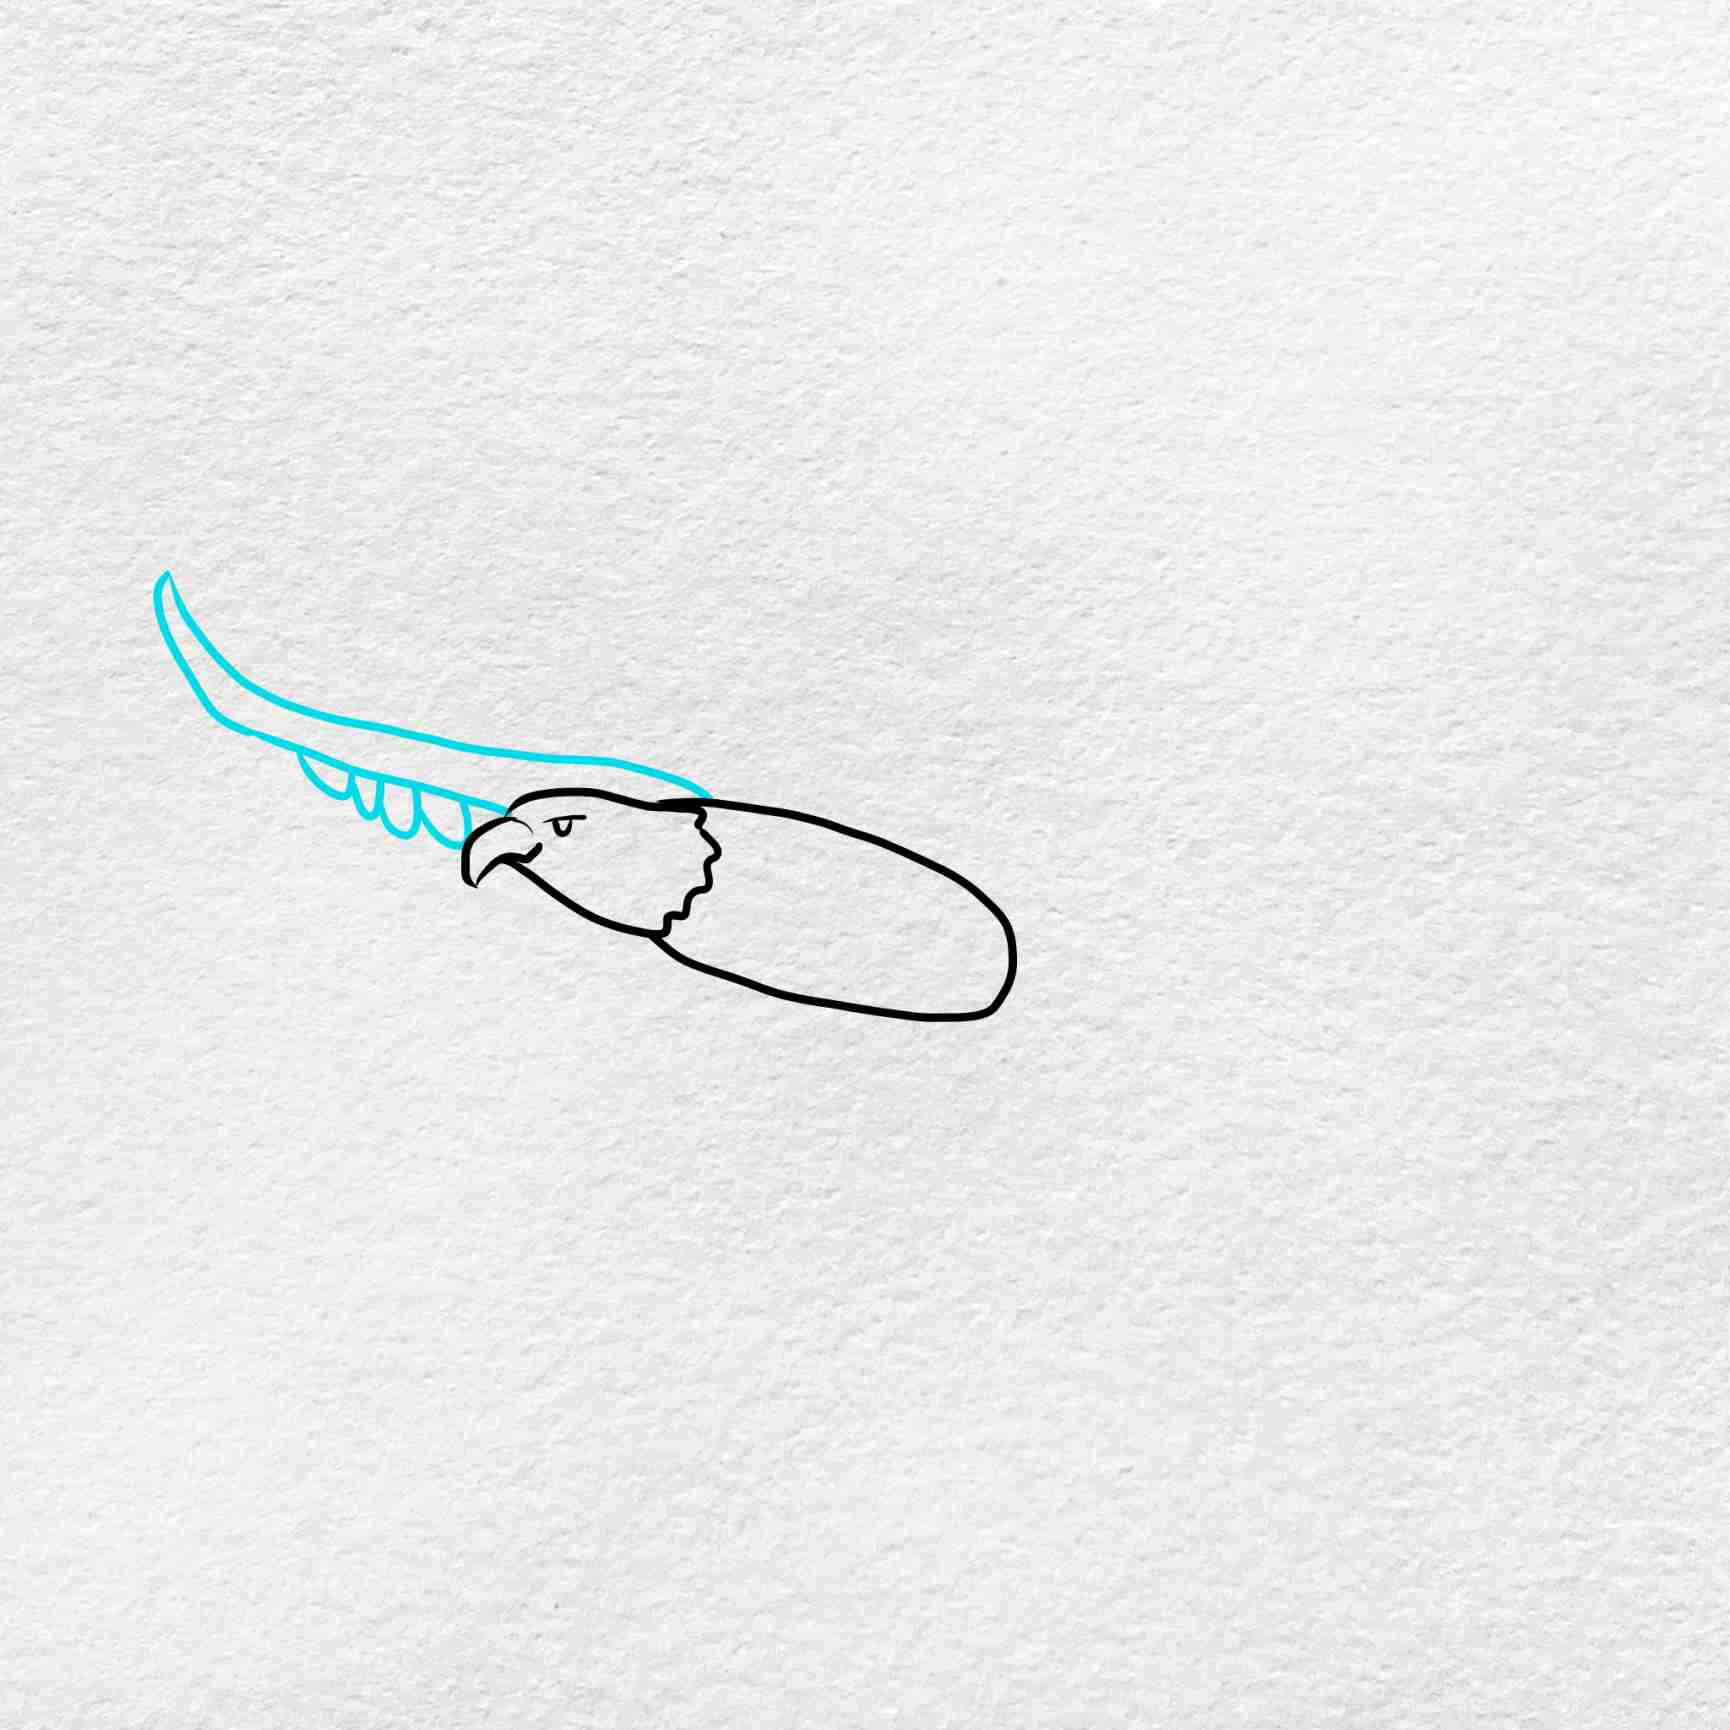 How To Draw A Eagle Flying: Step 3